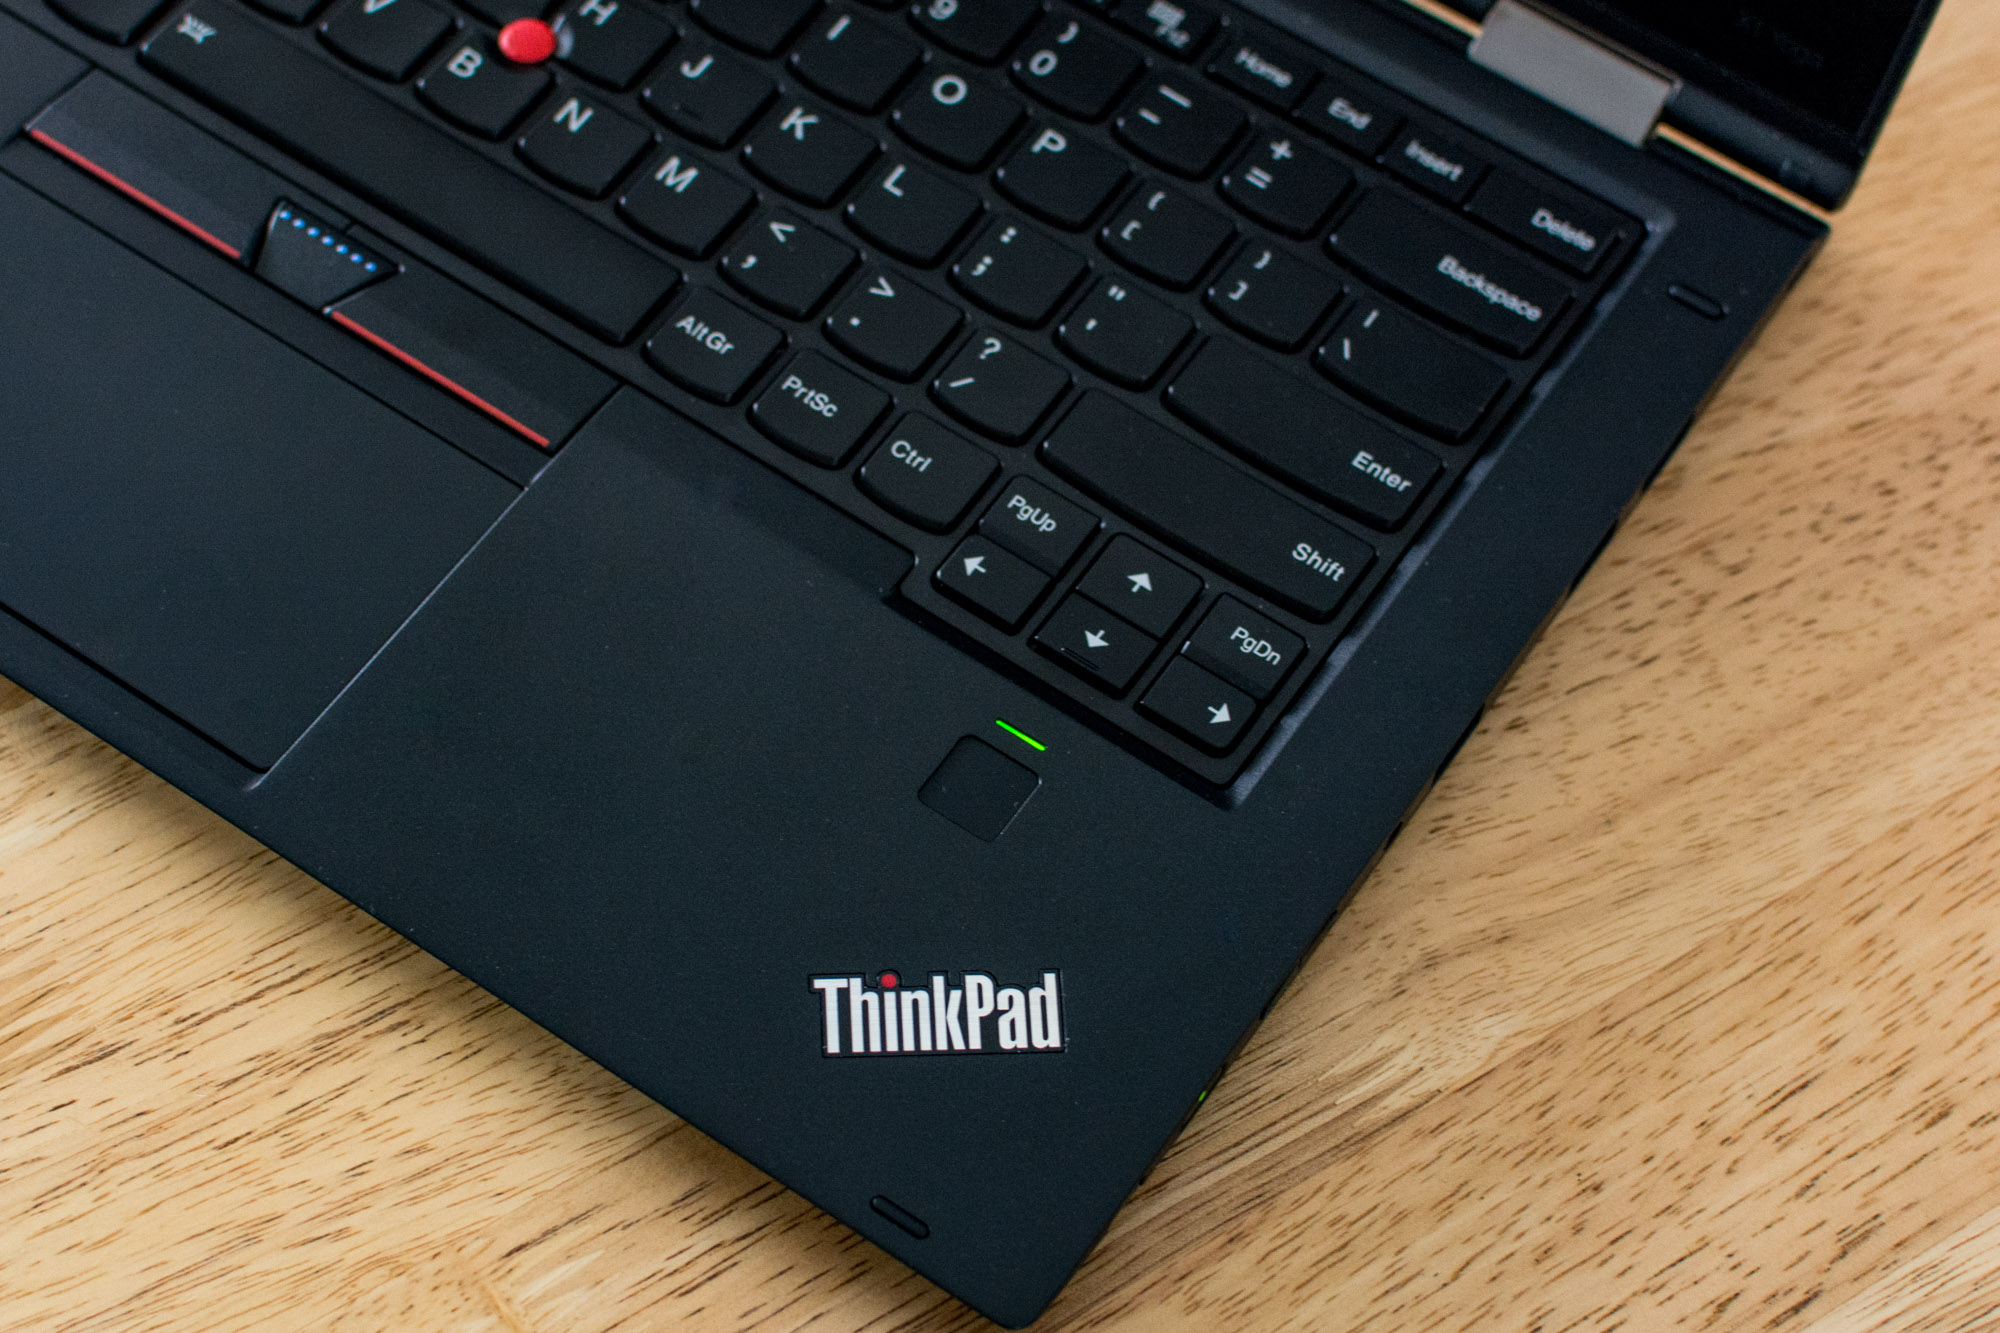 Lenovo-Thinkpad-X1-Yoga-5